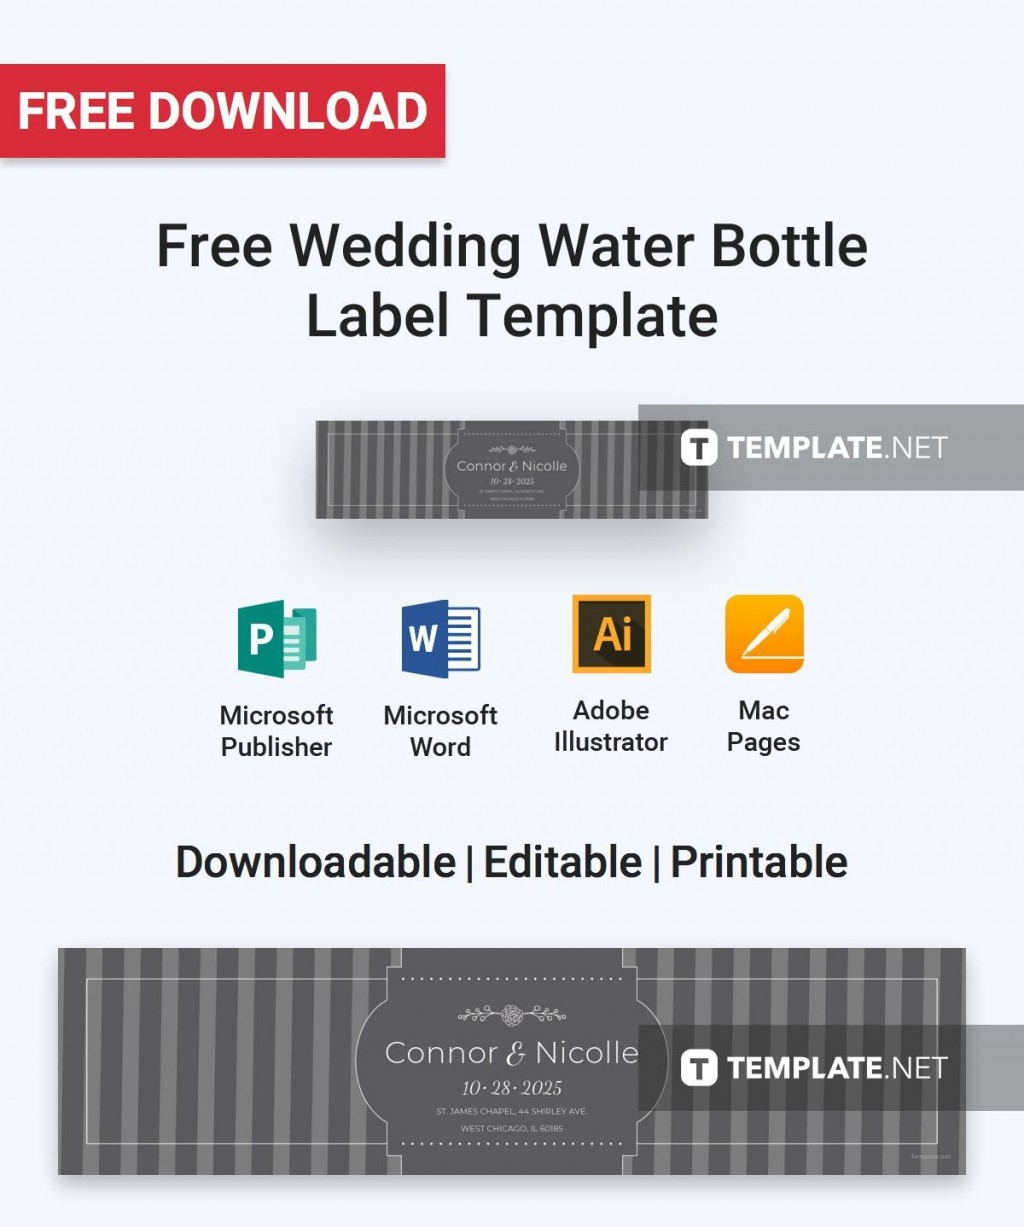 000 Fearsome Free Wedding Template For Word Water Bottle Label High Def  LabelsLarge